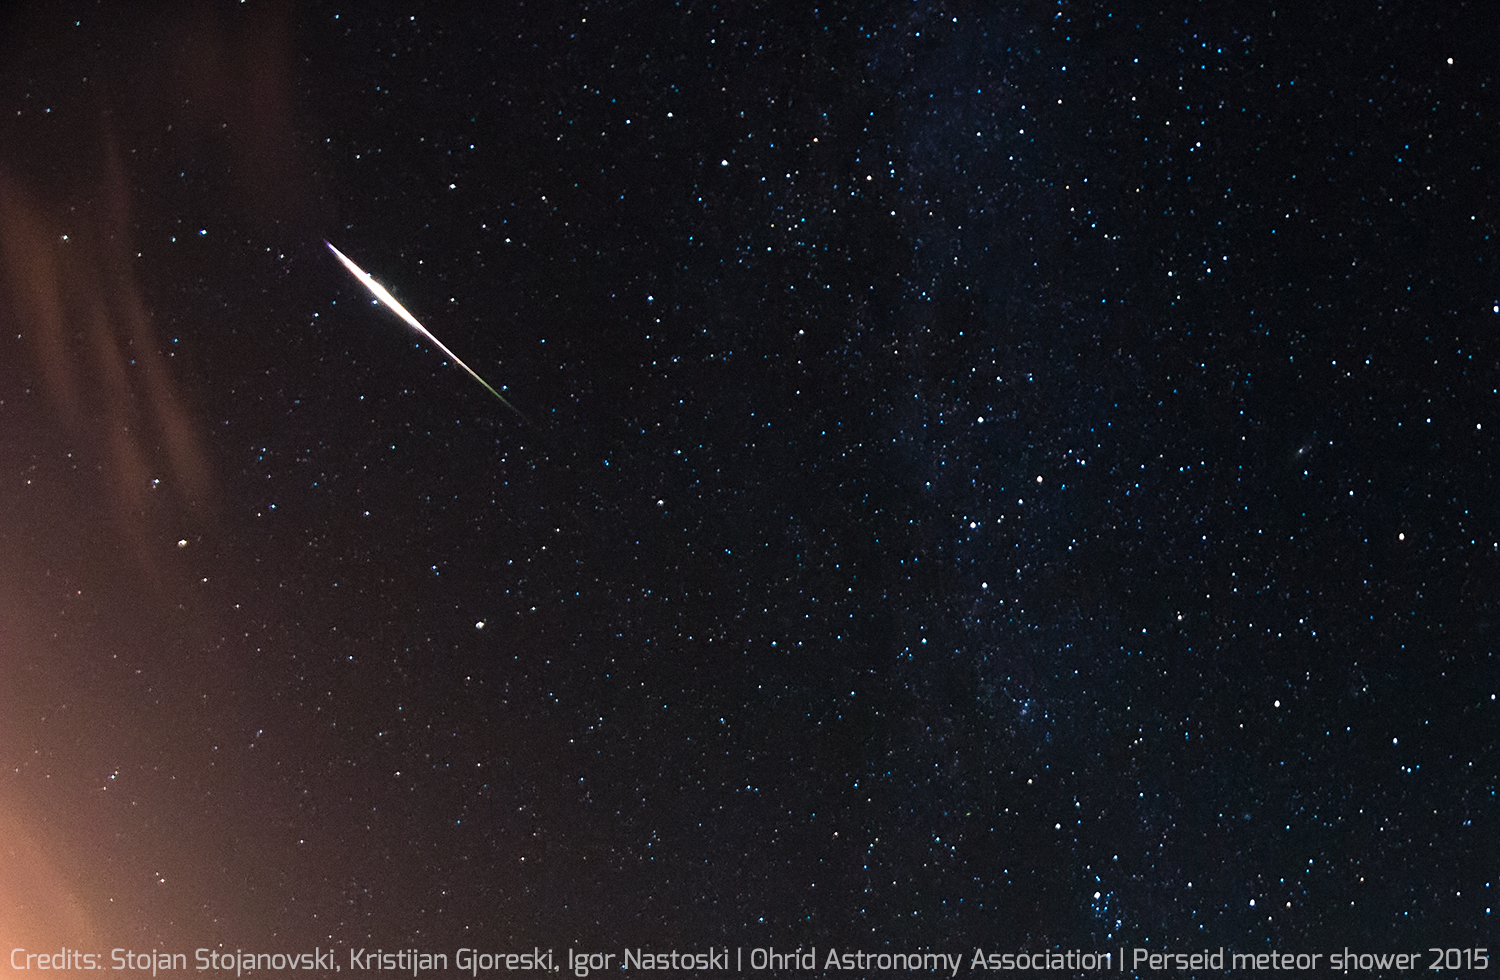 Amazing Perseid Meteor Shower Photos of 2015